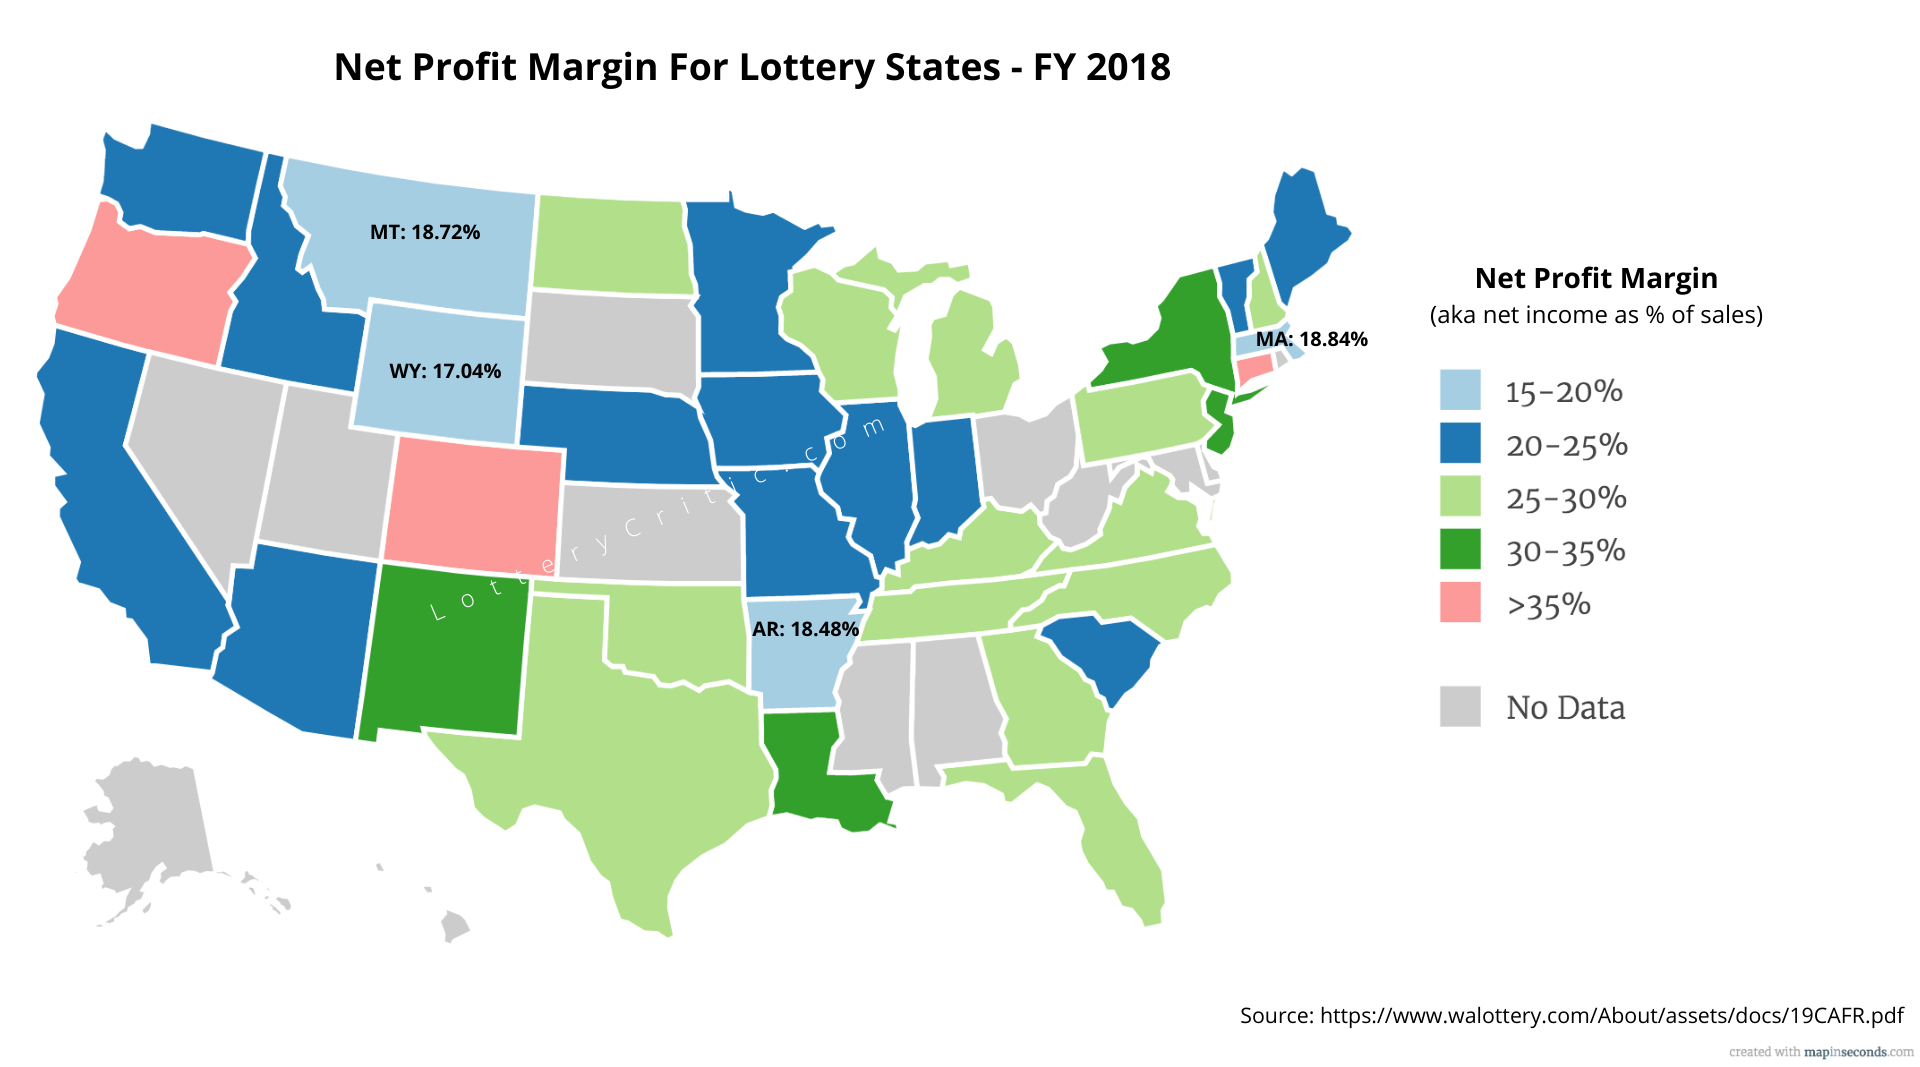 Operating Income as a % of total sales for all lottery states